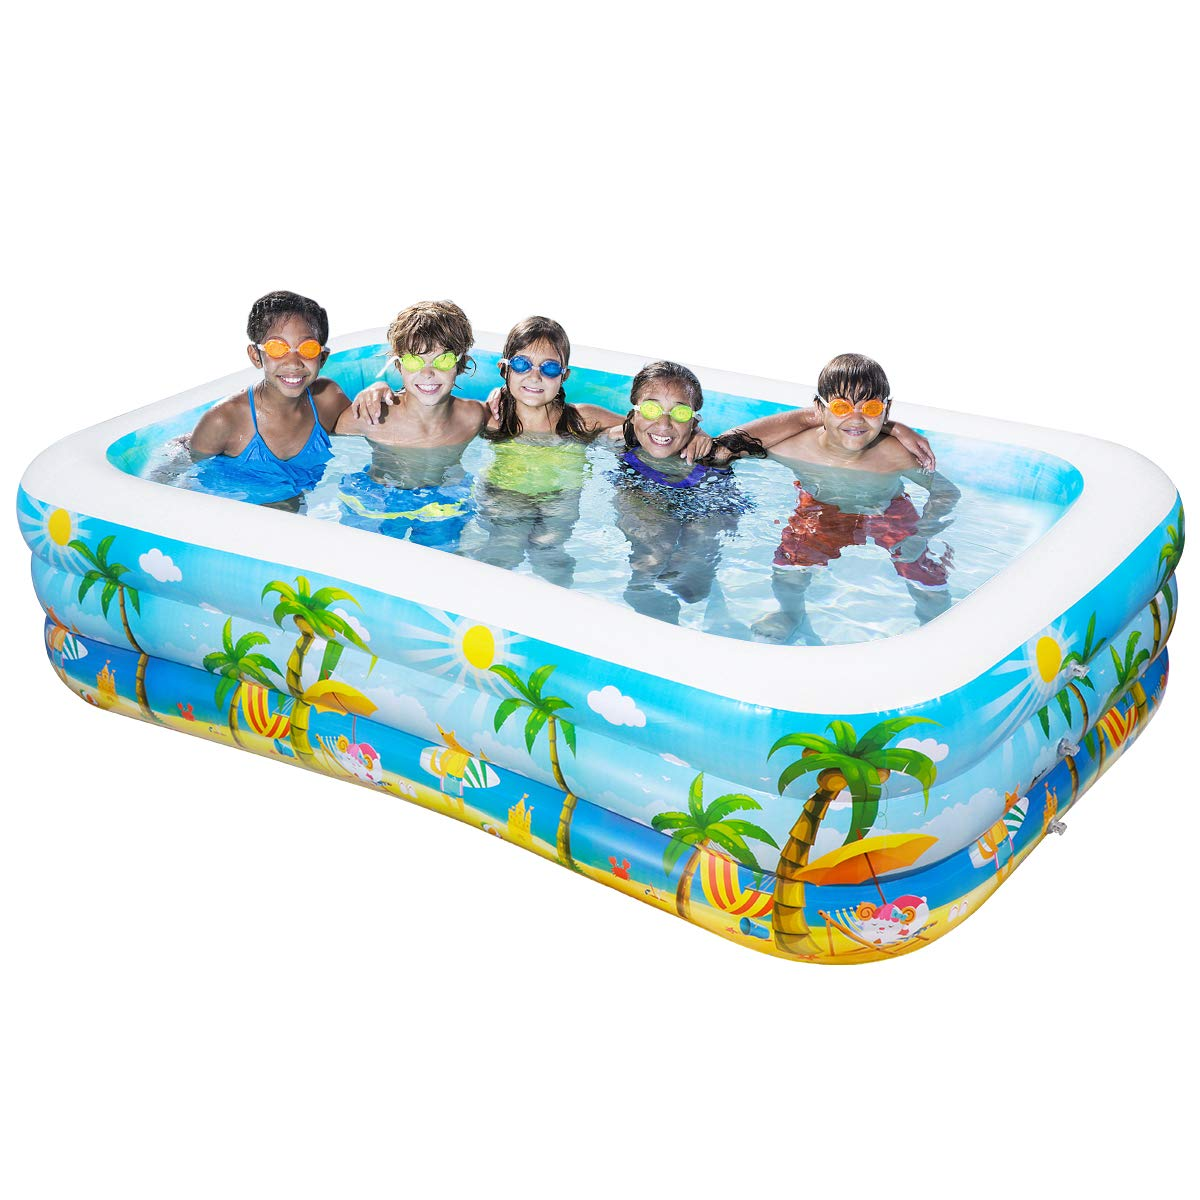 iBaseToy Giant Inflatable Swimming Pool, Adult Inflatable Pool for Summer Party, Rectangular Family Swimming Pool for Kids, 103'' x 59'' x 22'', for Ages 3+ by iBaseToy (Image #1)